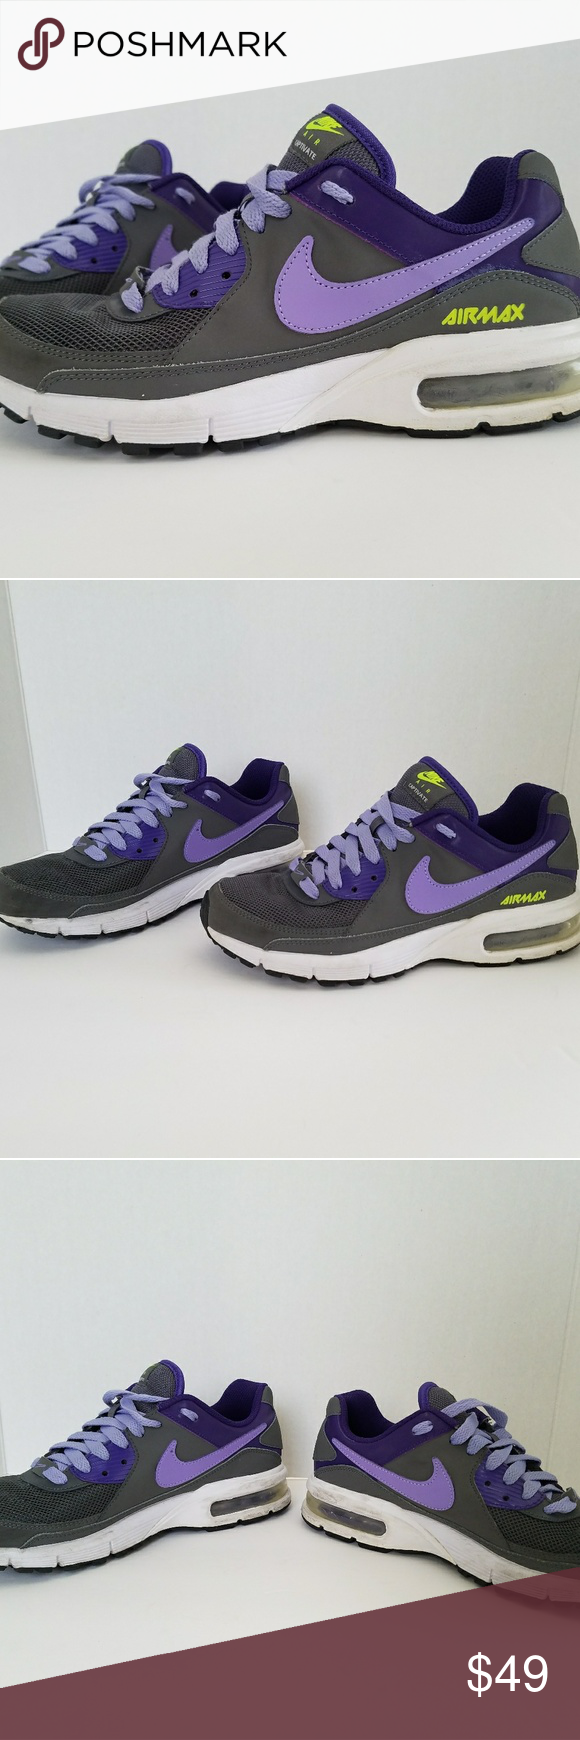 purchase cheap cfbf8 c8d0f NIKE Air Max Captivate Purple Gray Womens Sneakers